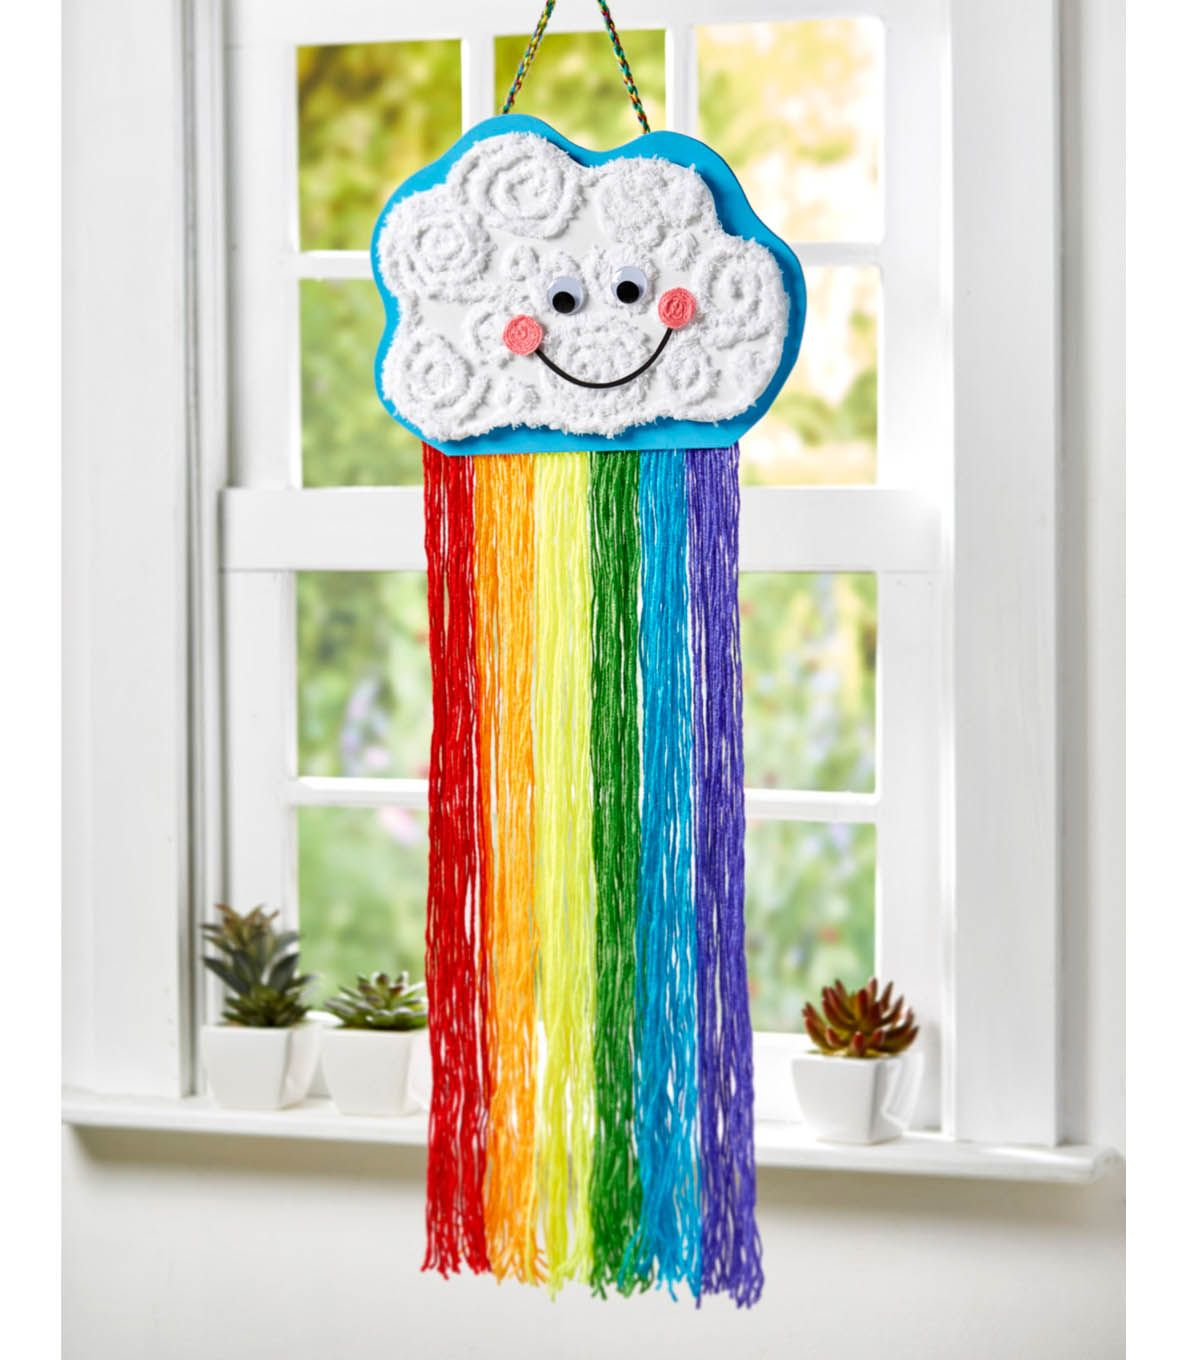 How To Create a Rainbow Dangler | Summer Projects with JOANN | Pinterest